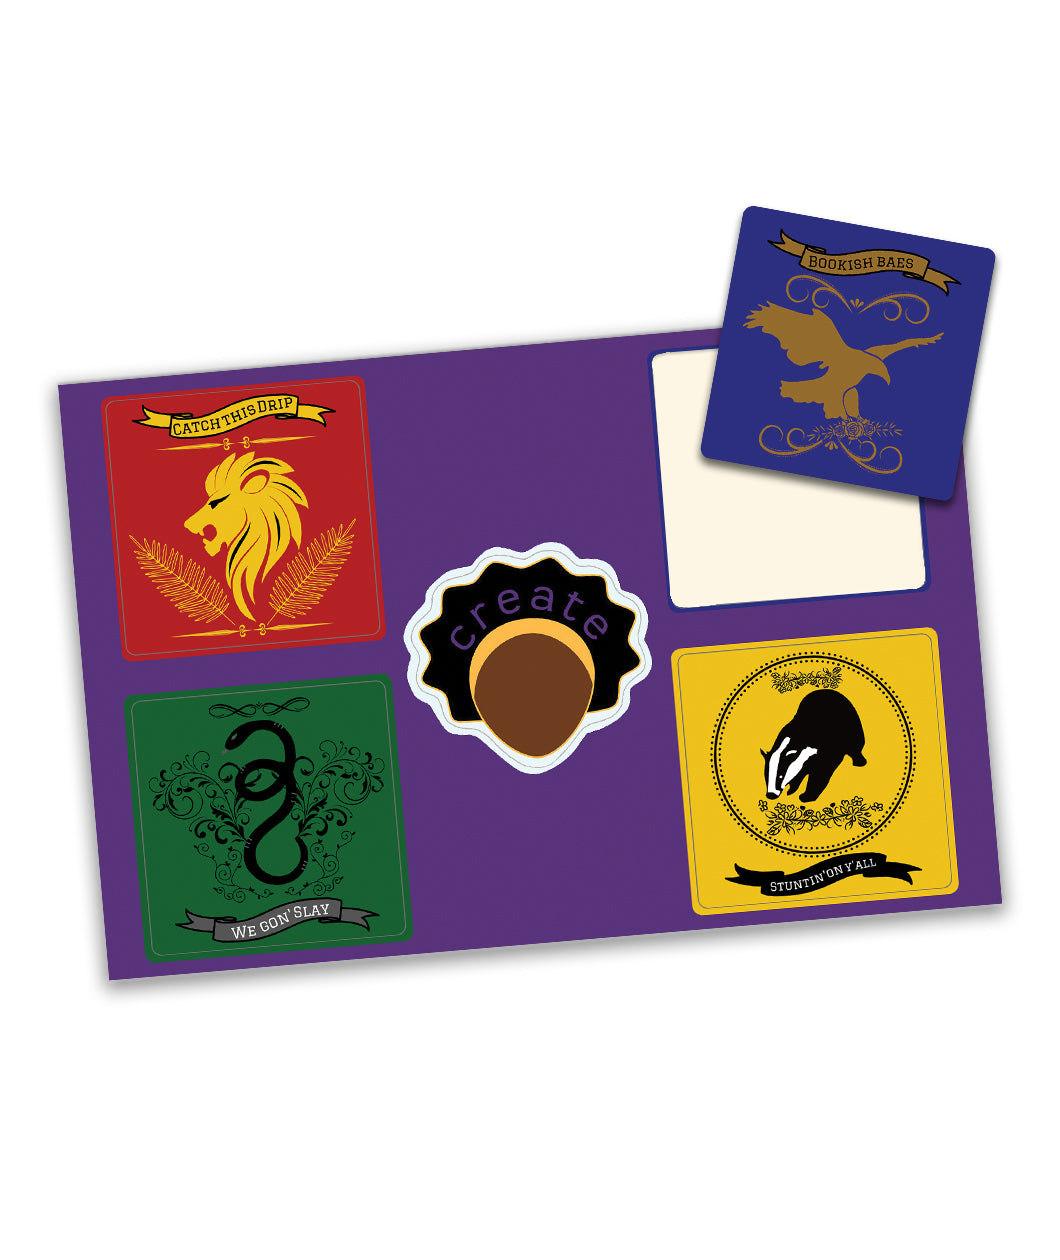 Hogwarts House Sticker Sheet